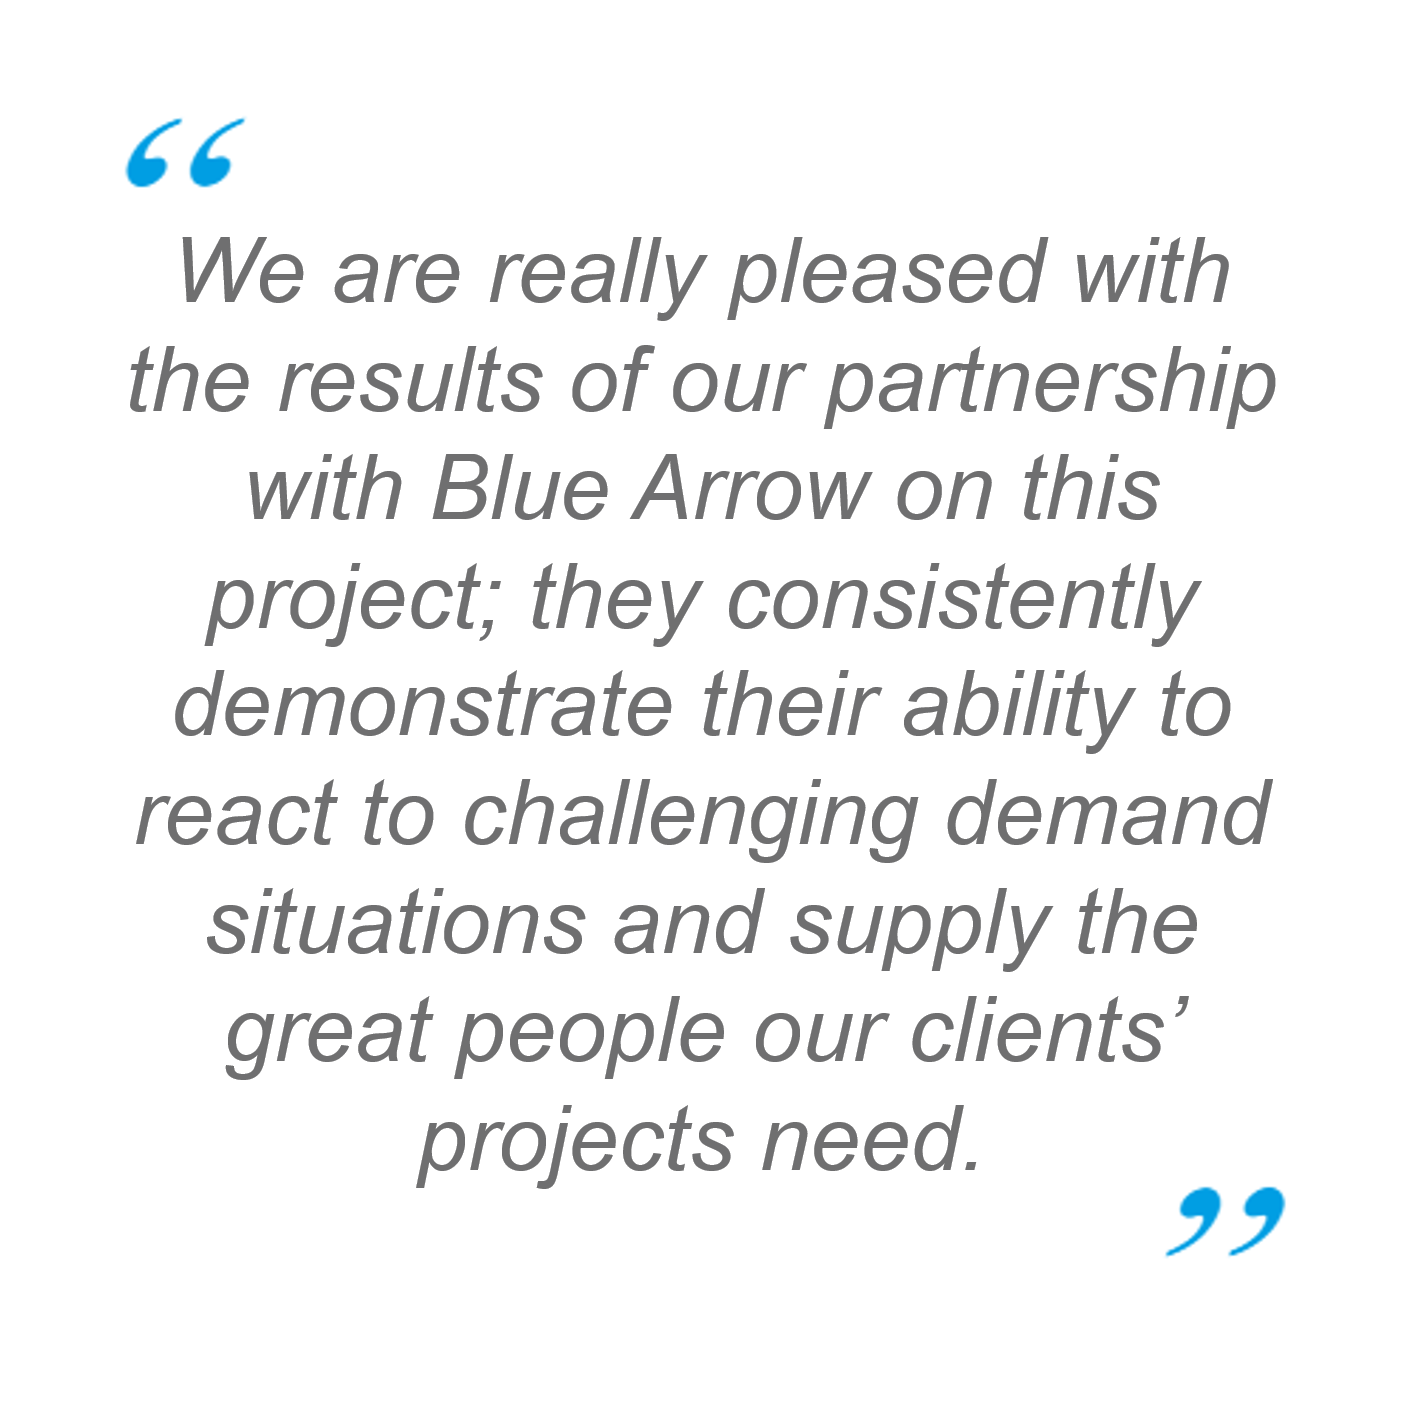 Quote: We are really pleased with the results of our partnership with Blue Arrow on this project; they consistently demonstrate their ability to react to challenging demand situations and supply the great people our clients' projects need.